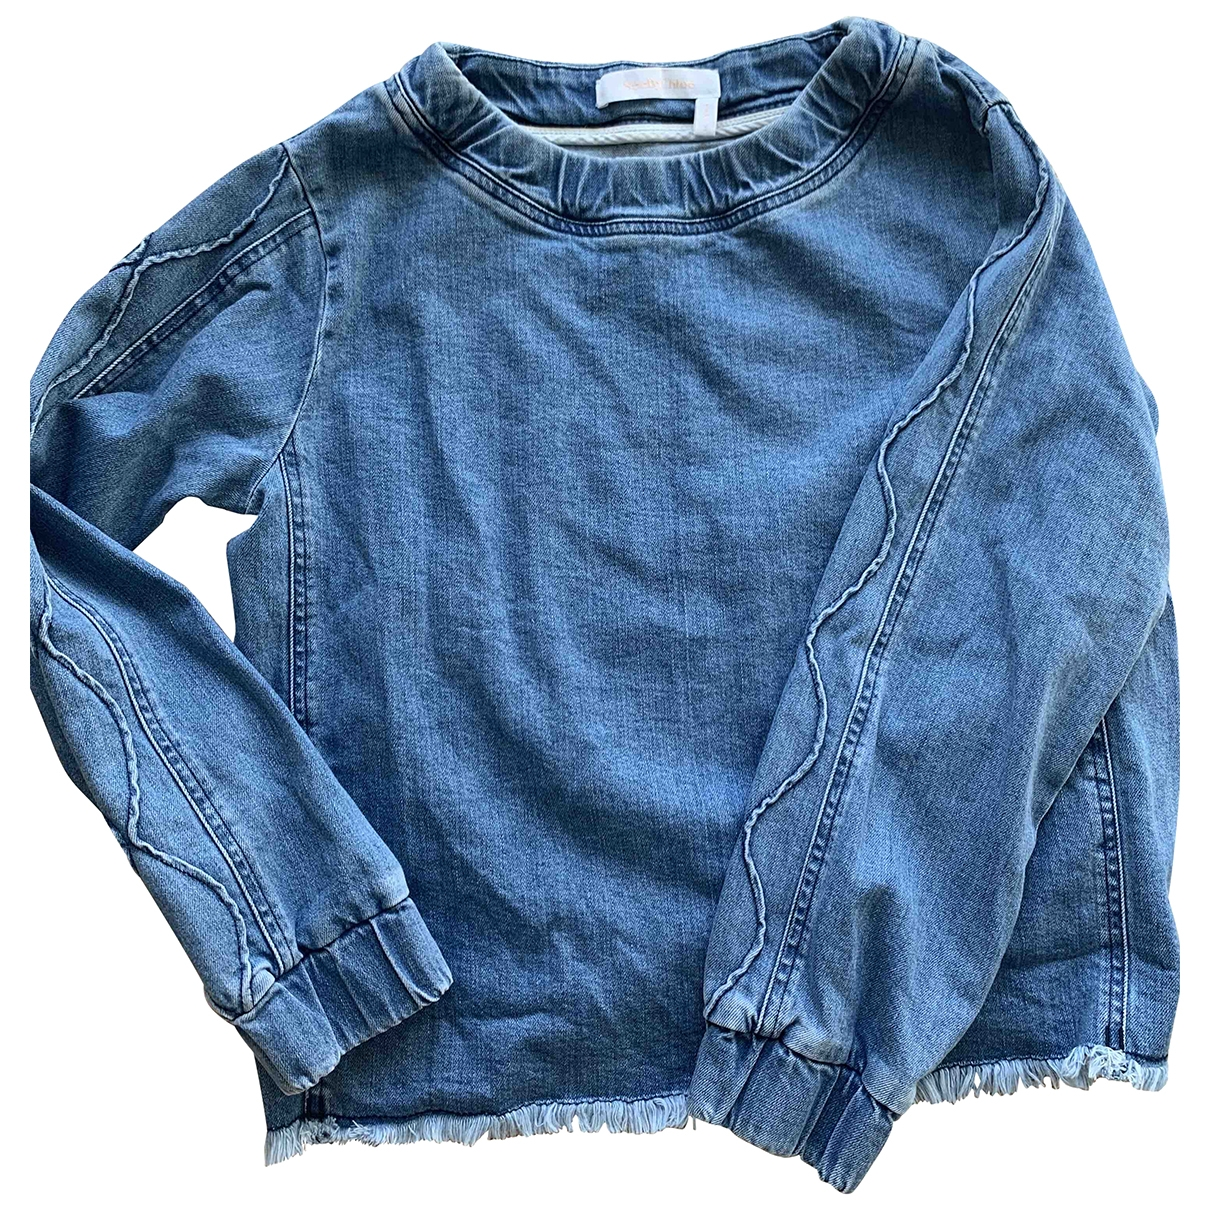 See By Chloé \N Blue Denim - Jeans  top for Women 38 FR